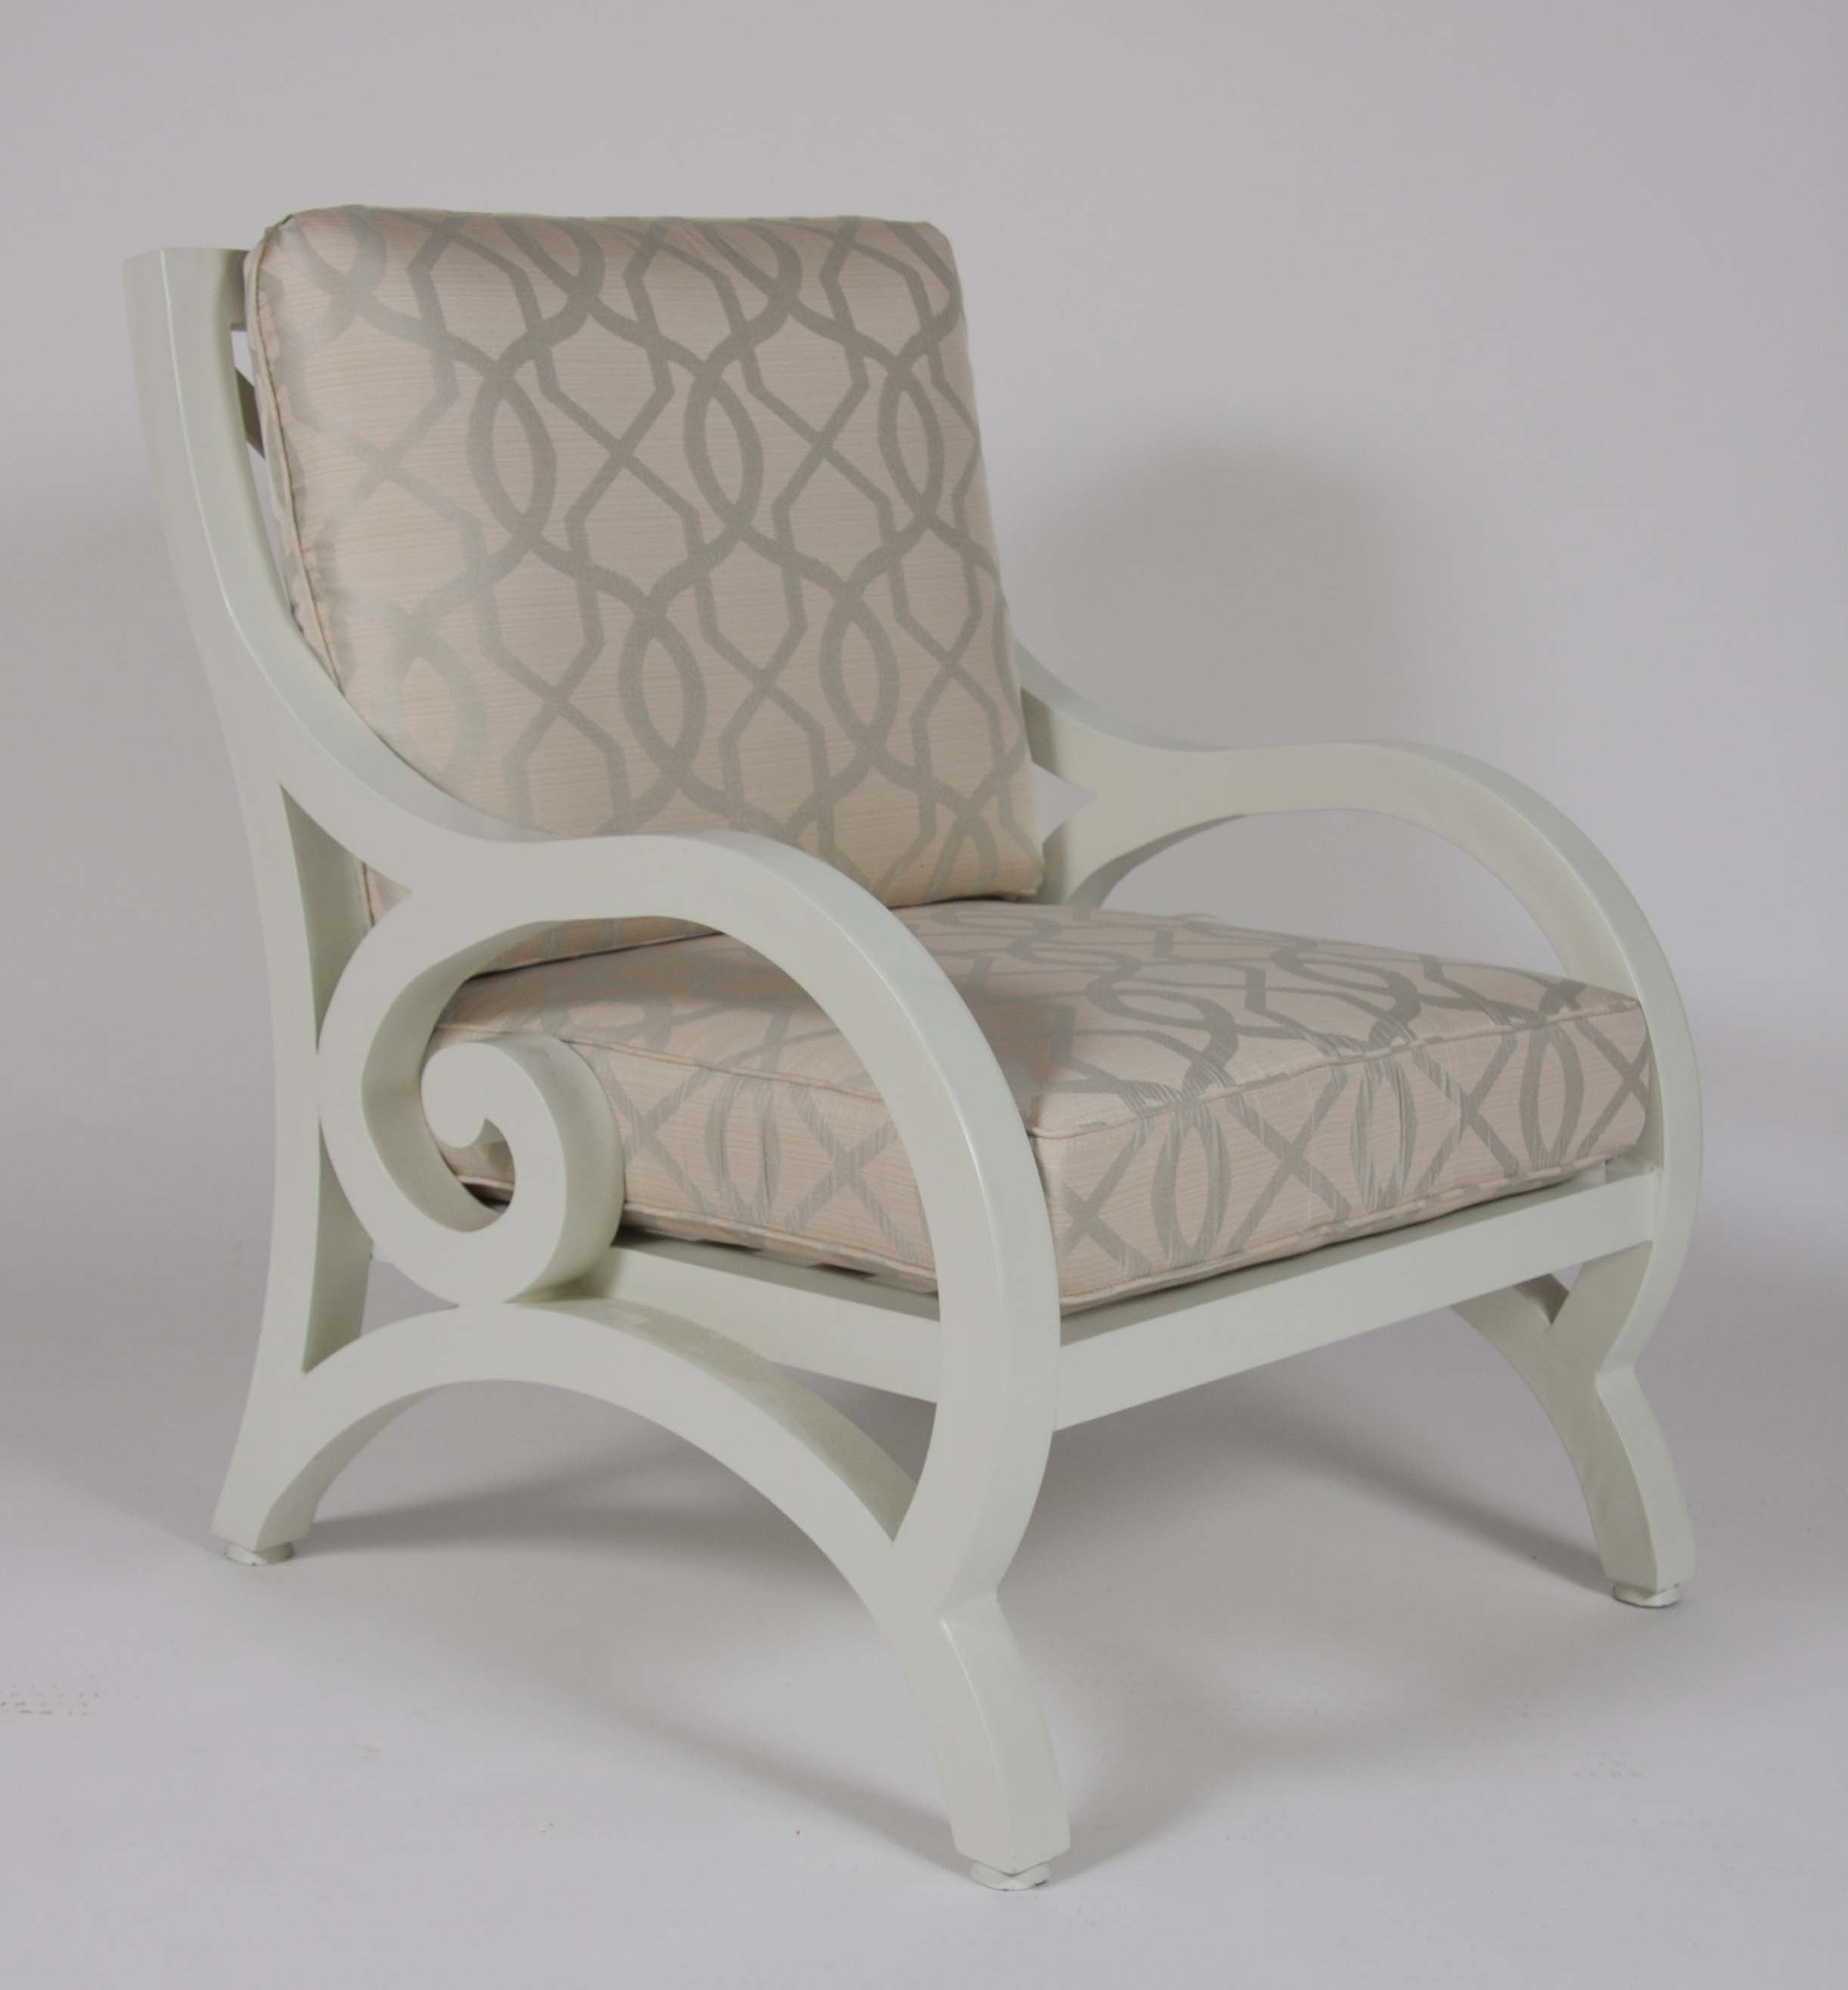 20th Century Aluminum Armchair